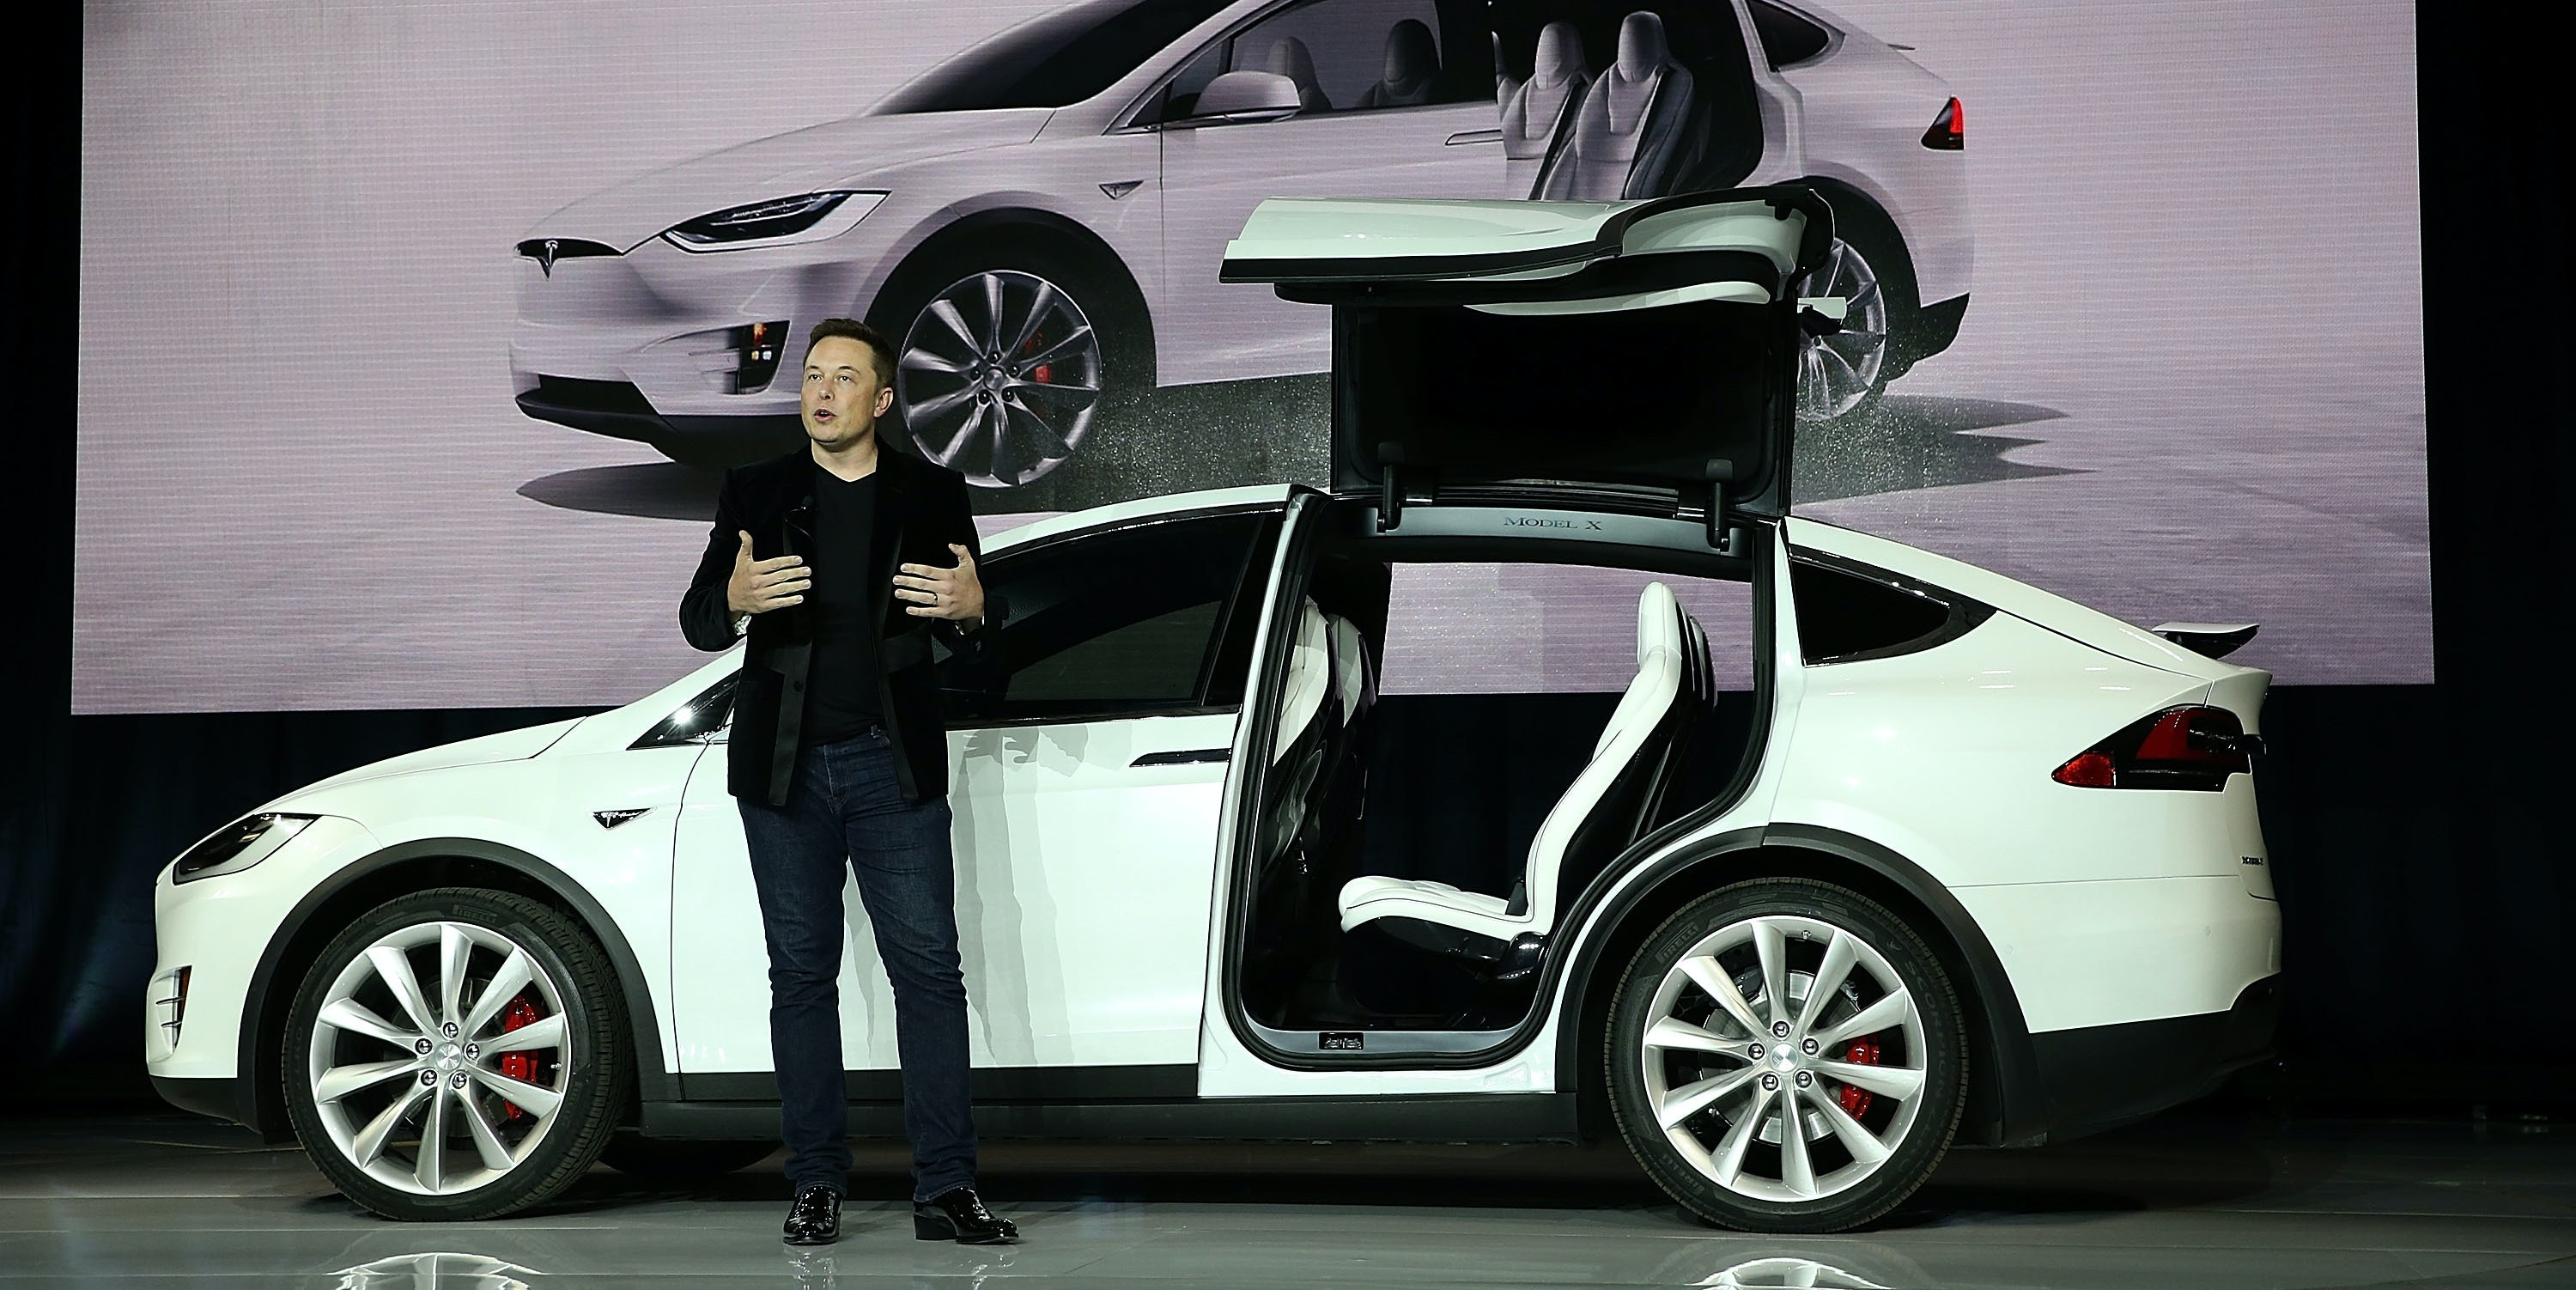 Tesla CEO Elon Musk confirmed on Sunday a new Autopilot update that enables Ludicrous+